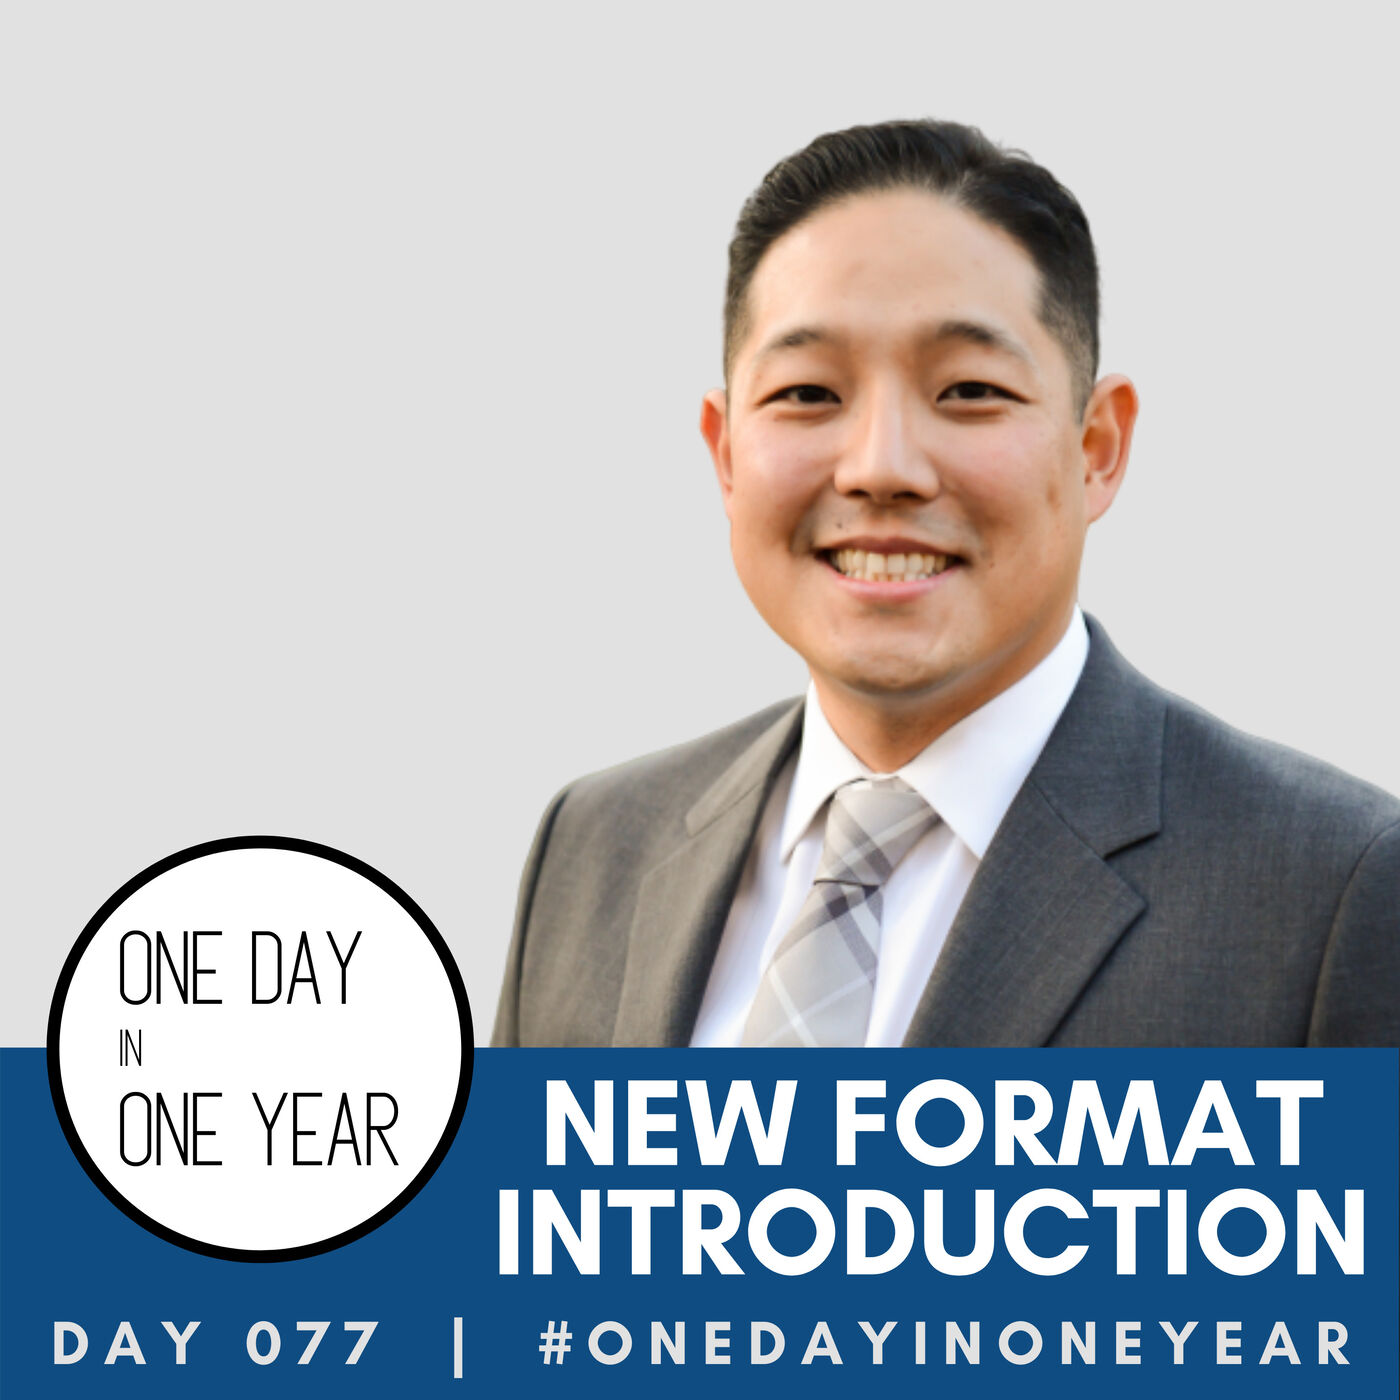 077 - Adjusted Format Introduction by Host Jerry Won